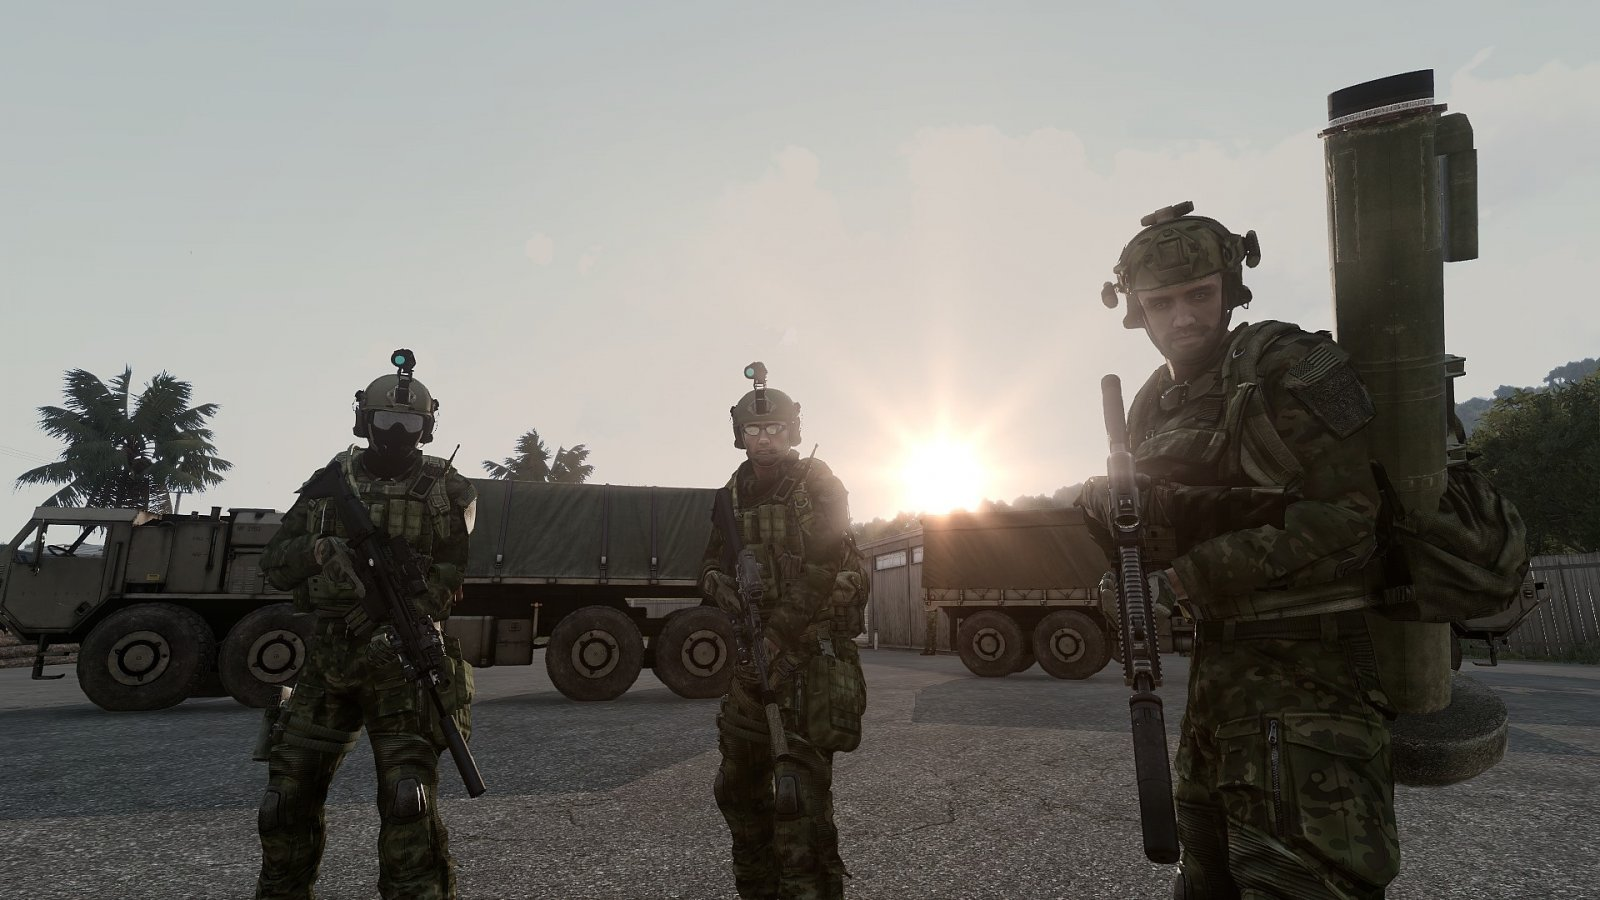 Soldiers at dawn